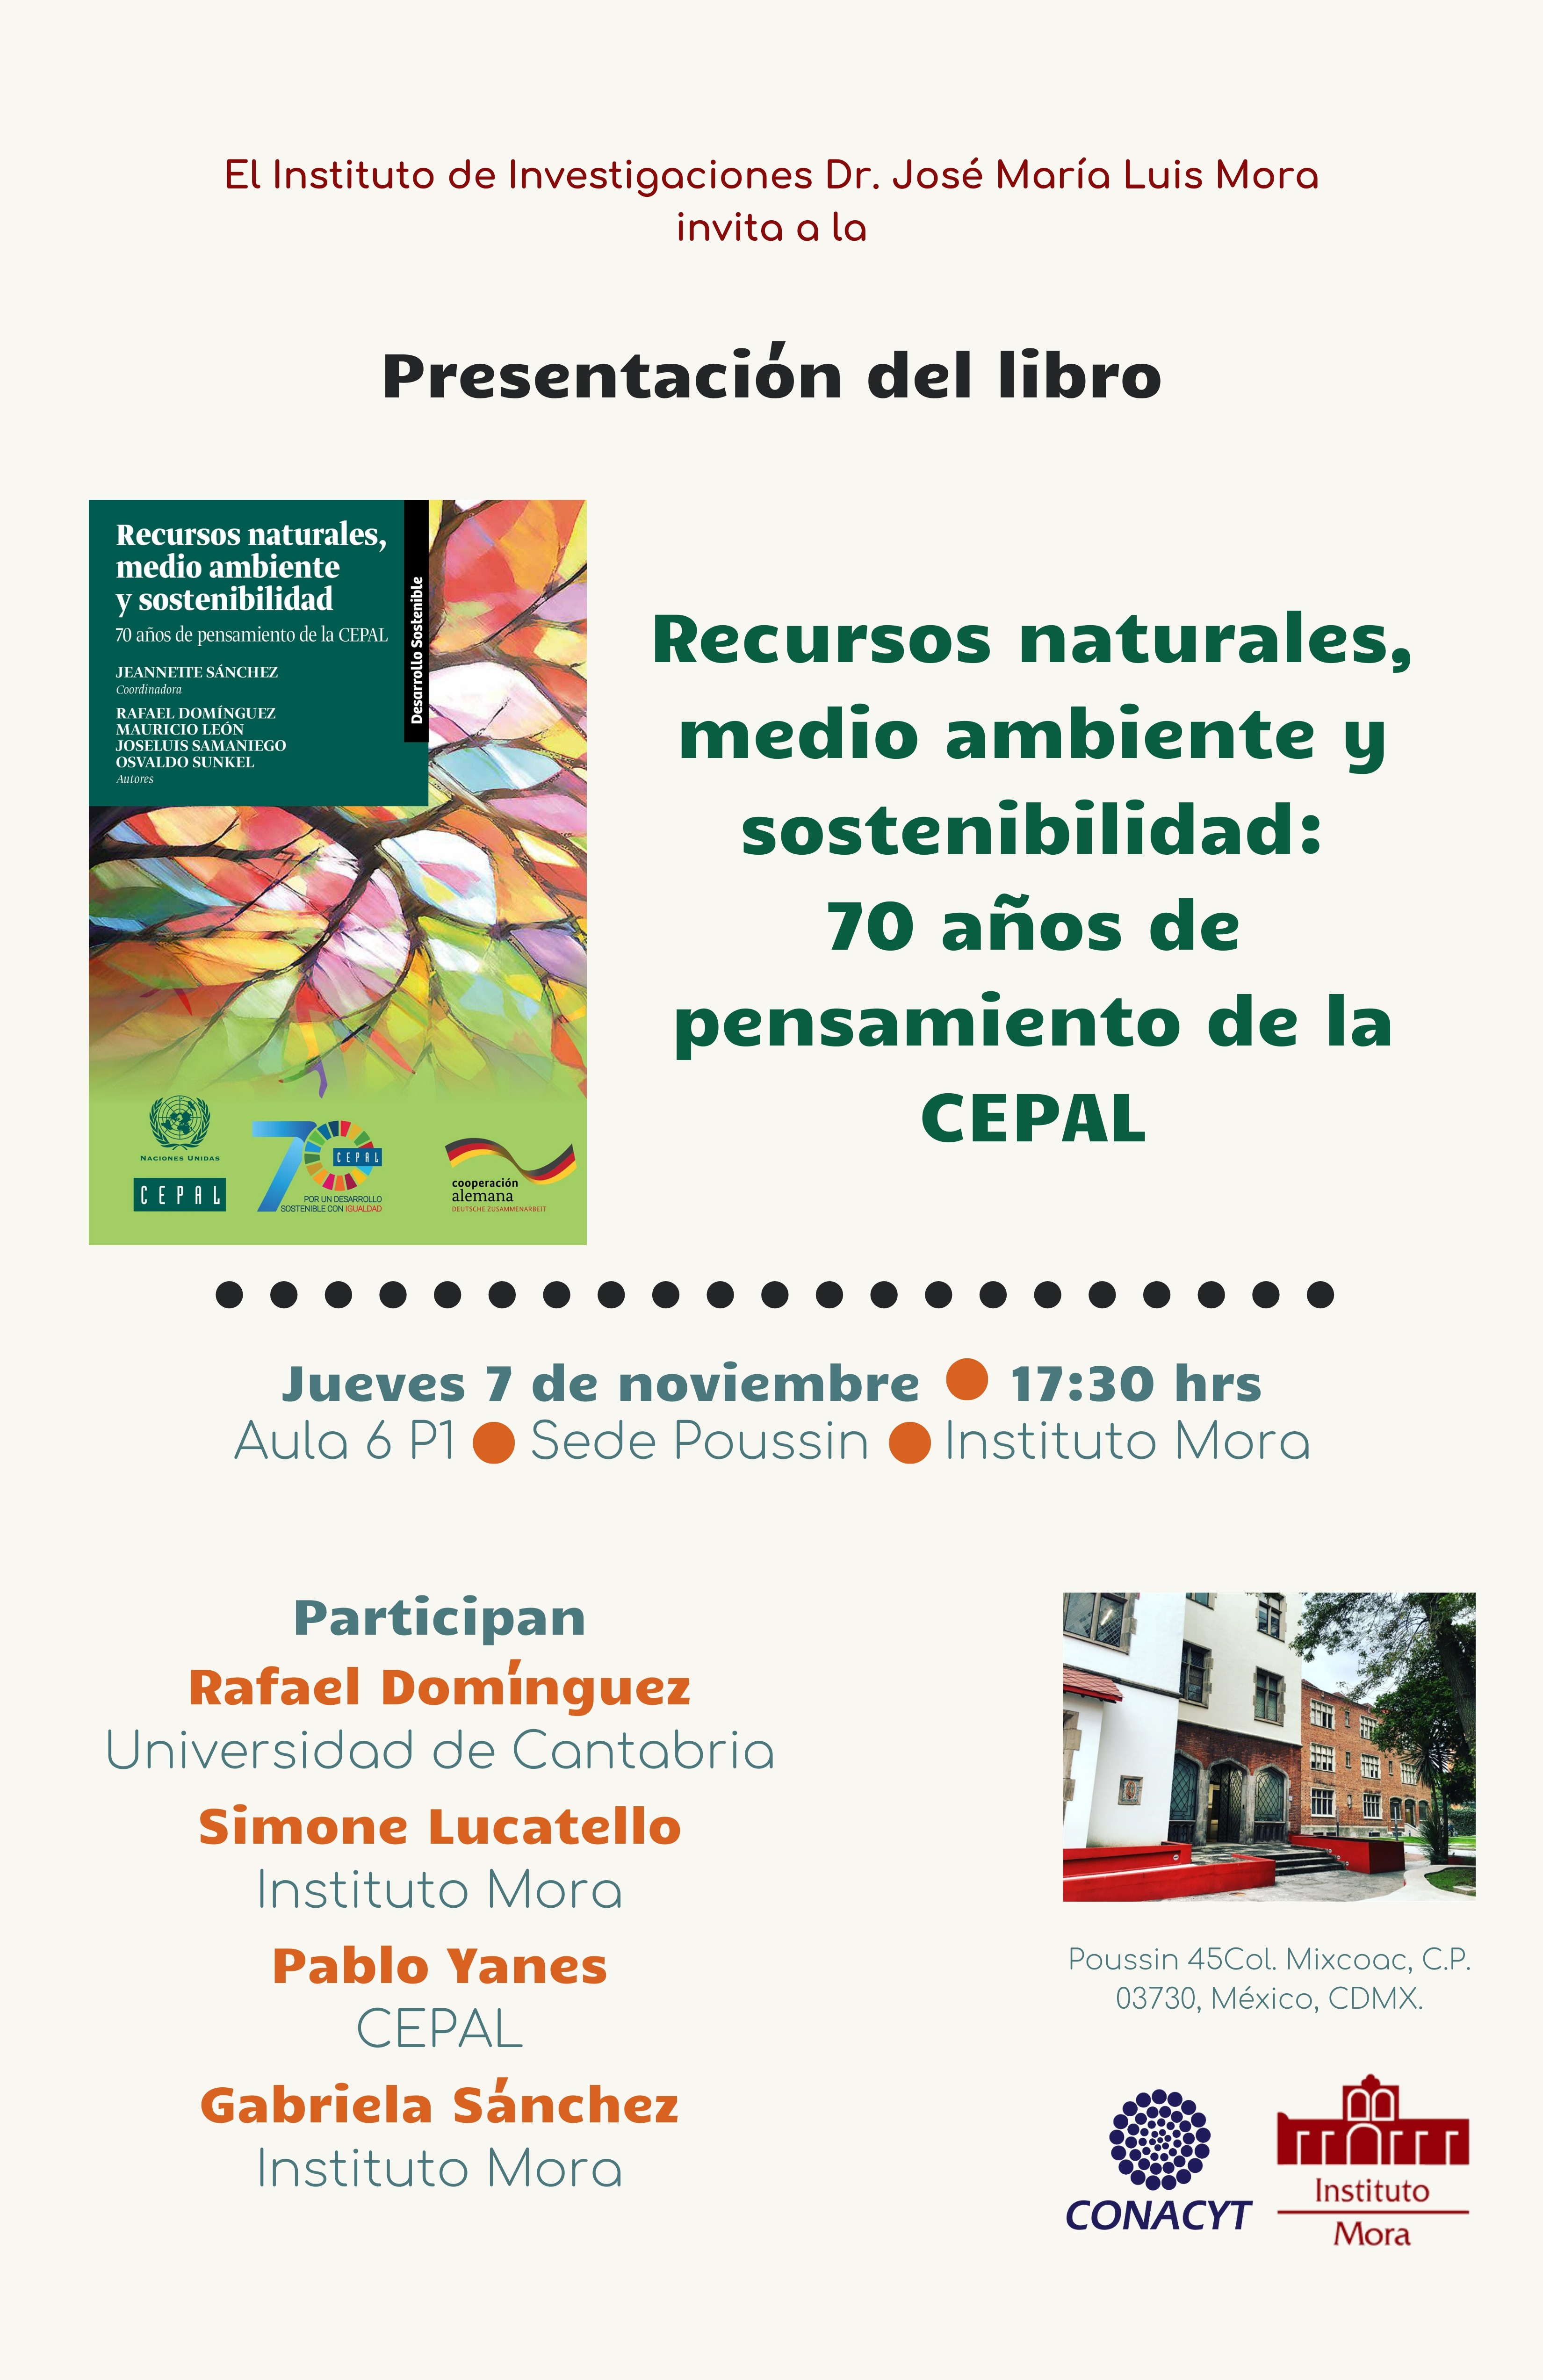 https://www.institutomora.edu.mx/Instituto/IE/1017_IEPrs07-1119.jpg